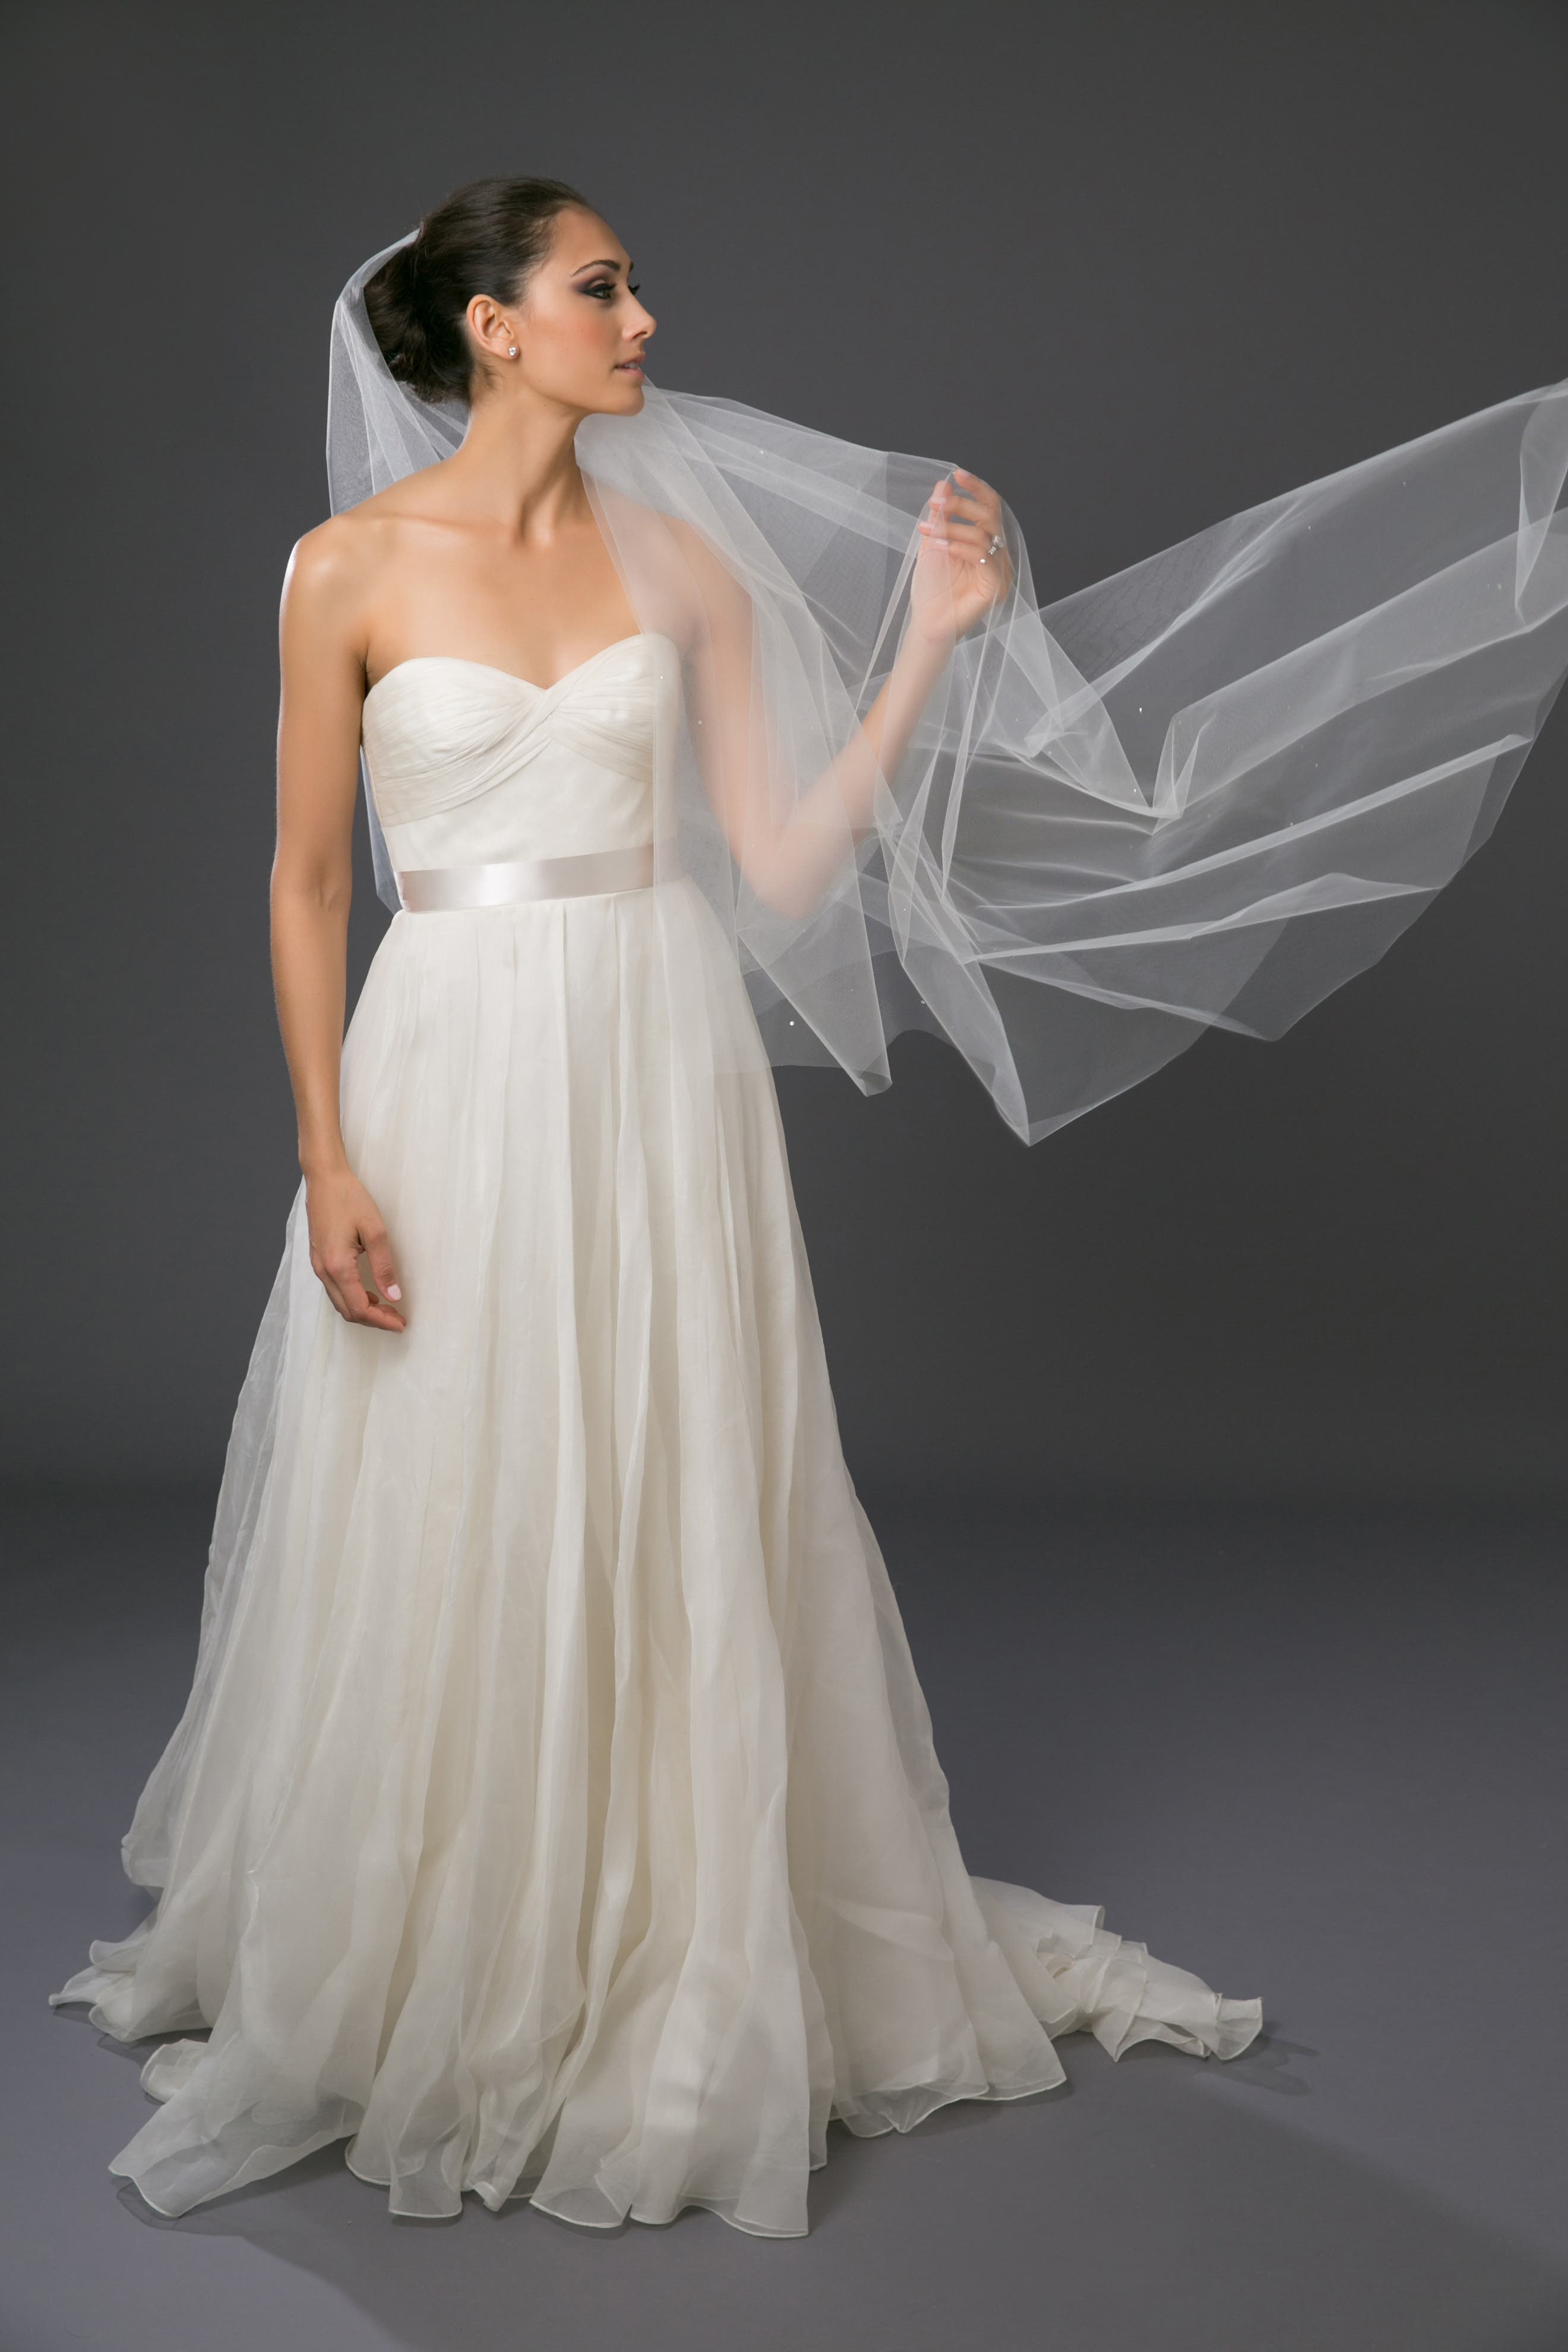 'Chakra' Circle Cut Waltz Length Veil,                             Alternate thumbnail 5, color,                             LIGHT IVORY